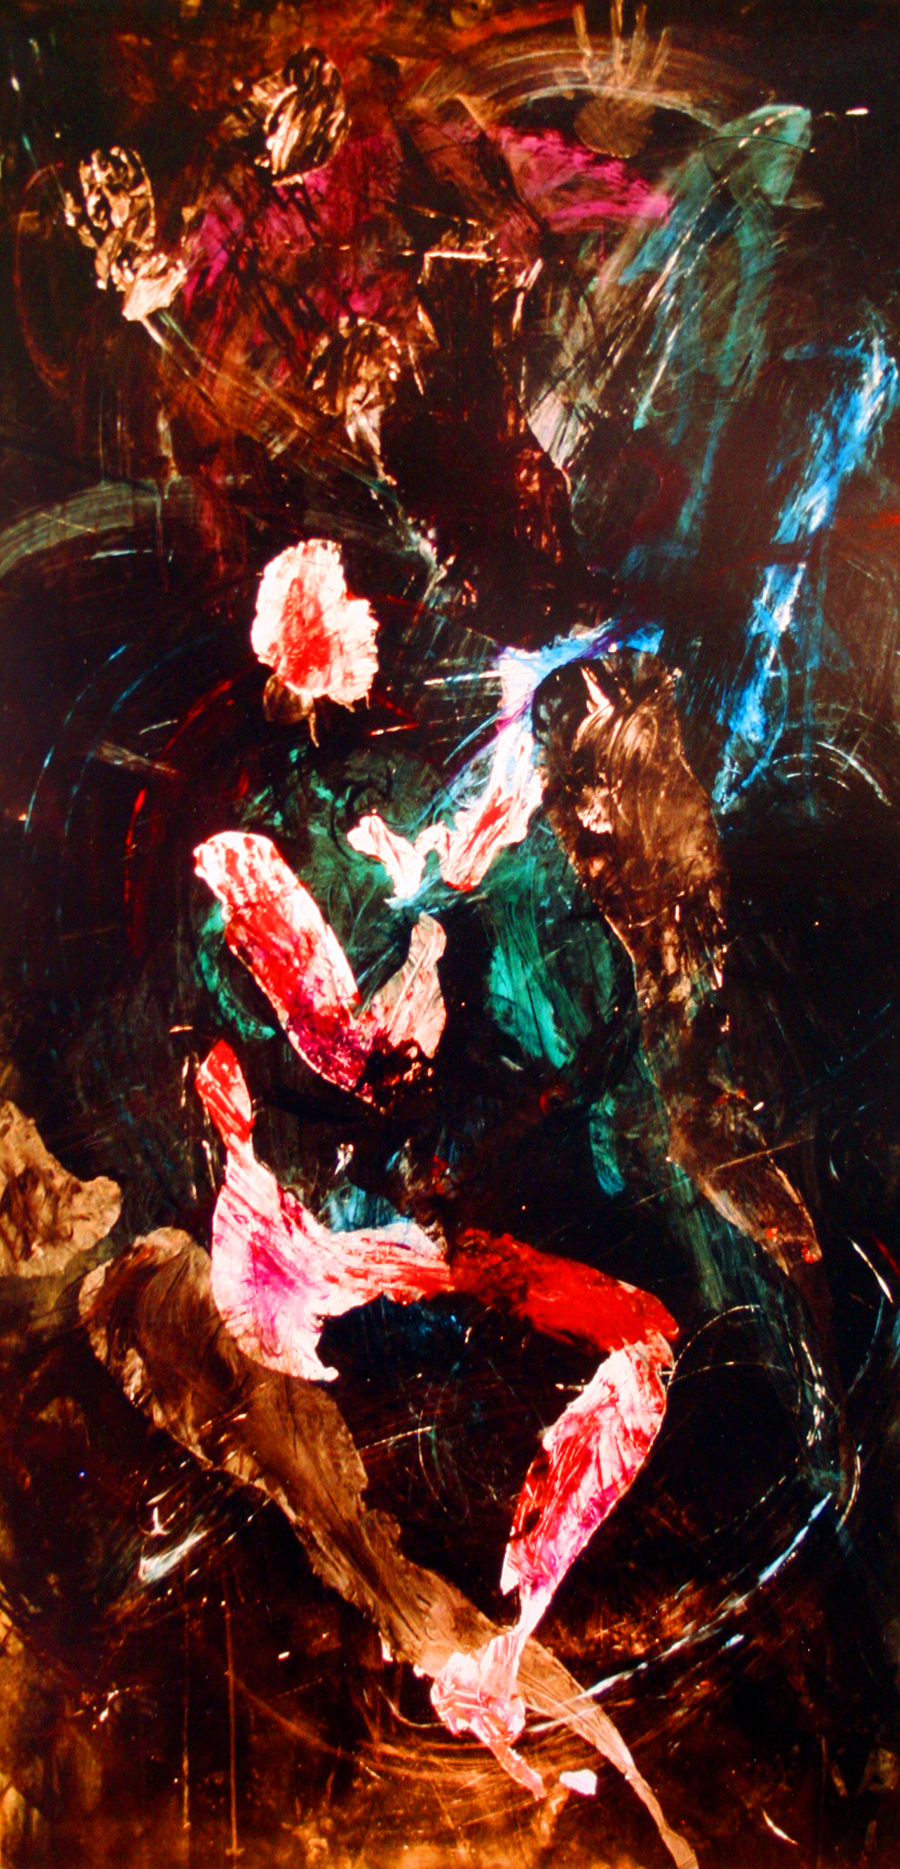 Traces, #1, from Body Print Series by Jane O'Shields-Hayner 1985 acrylic on paper size: 6' X 3.5 '